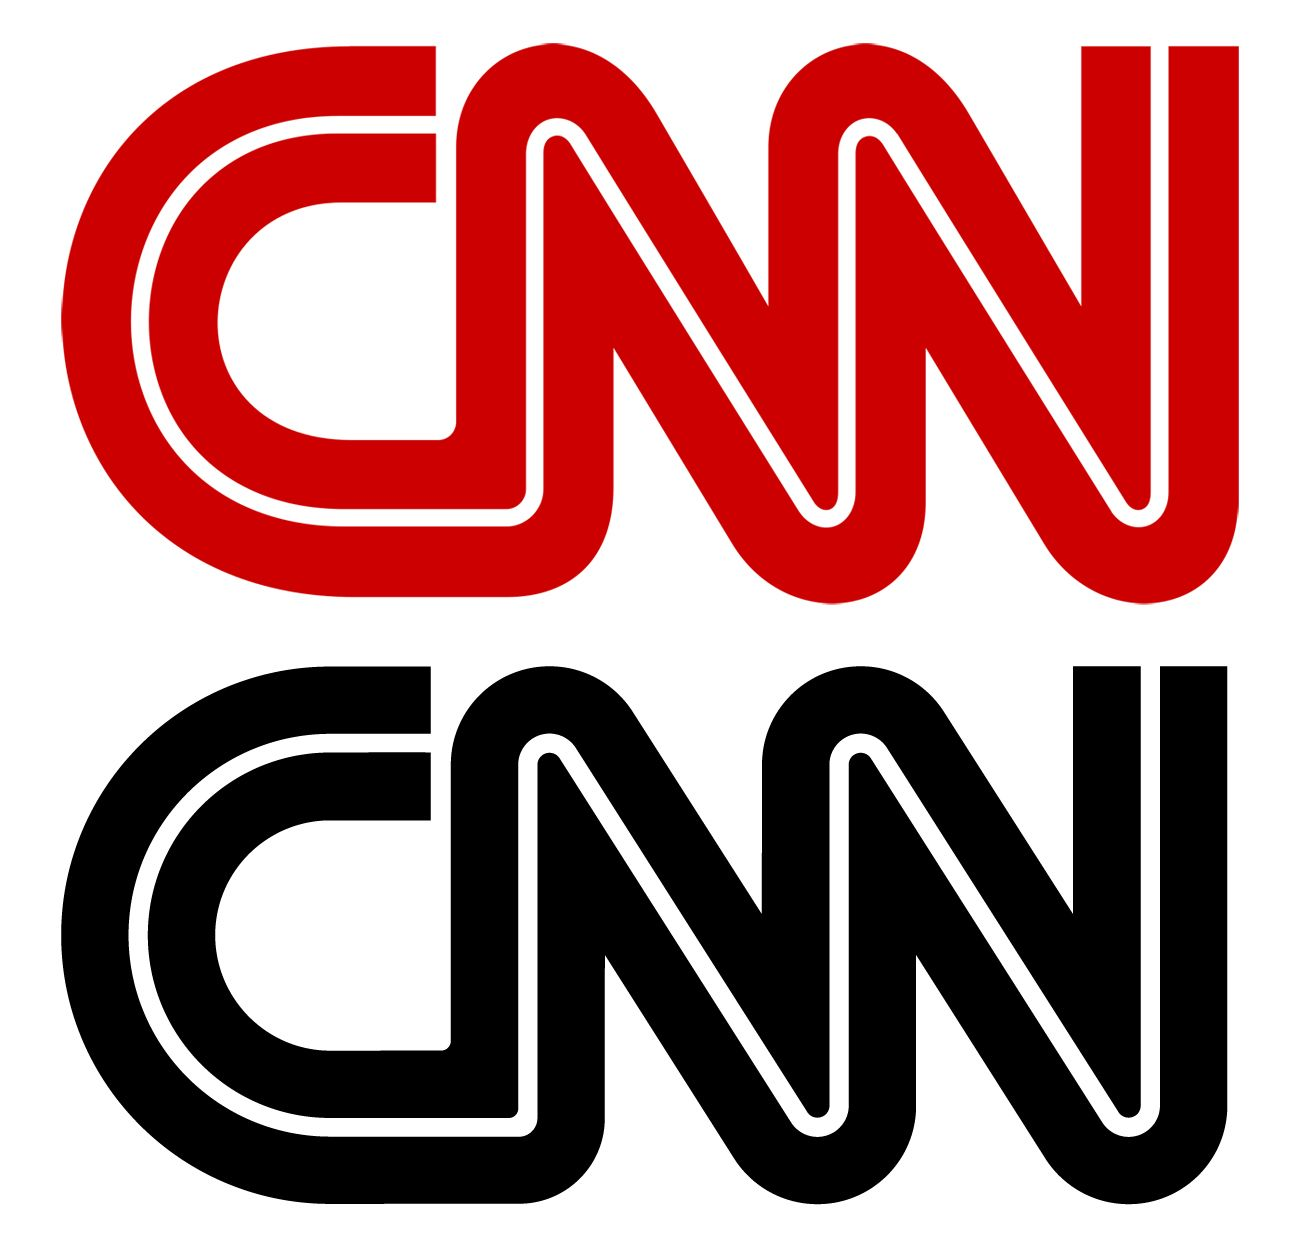 CNN Logo - CNN Logo, CNN Symbol Meaning, History and Evolution